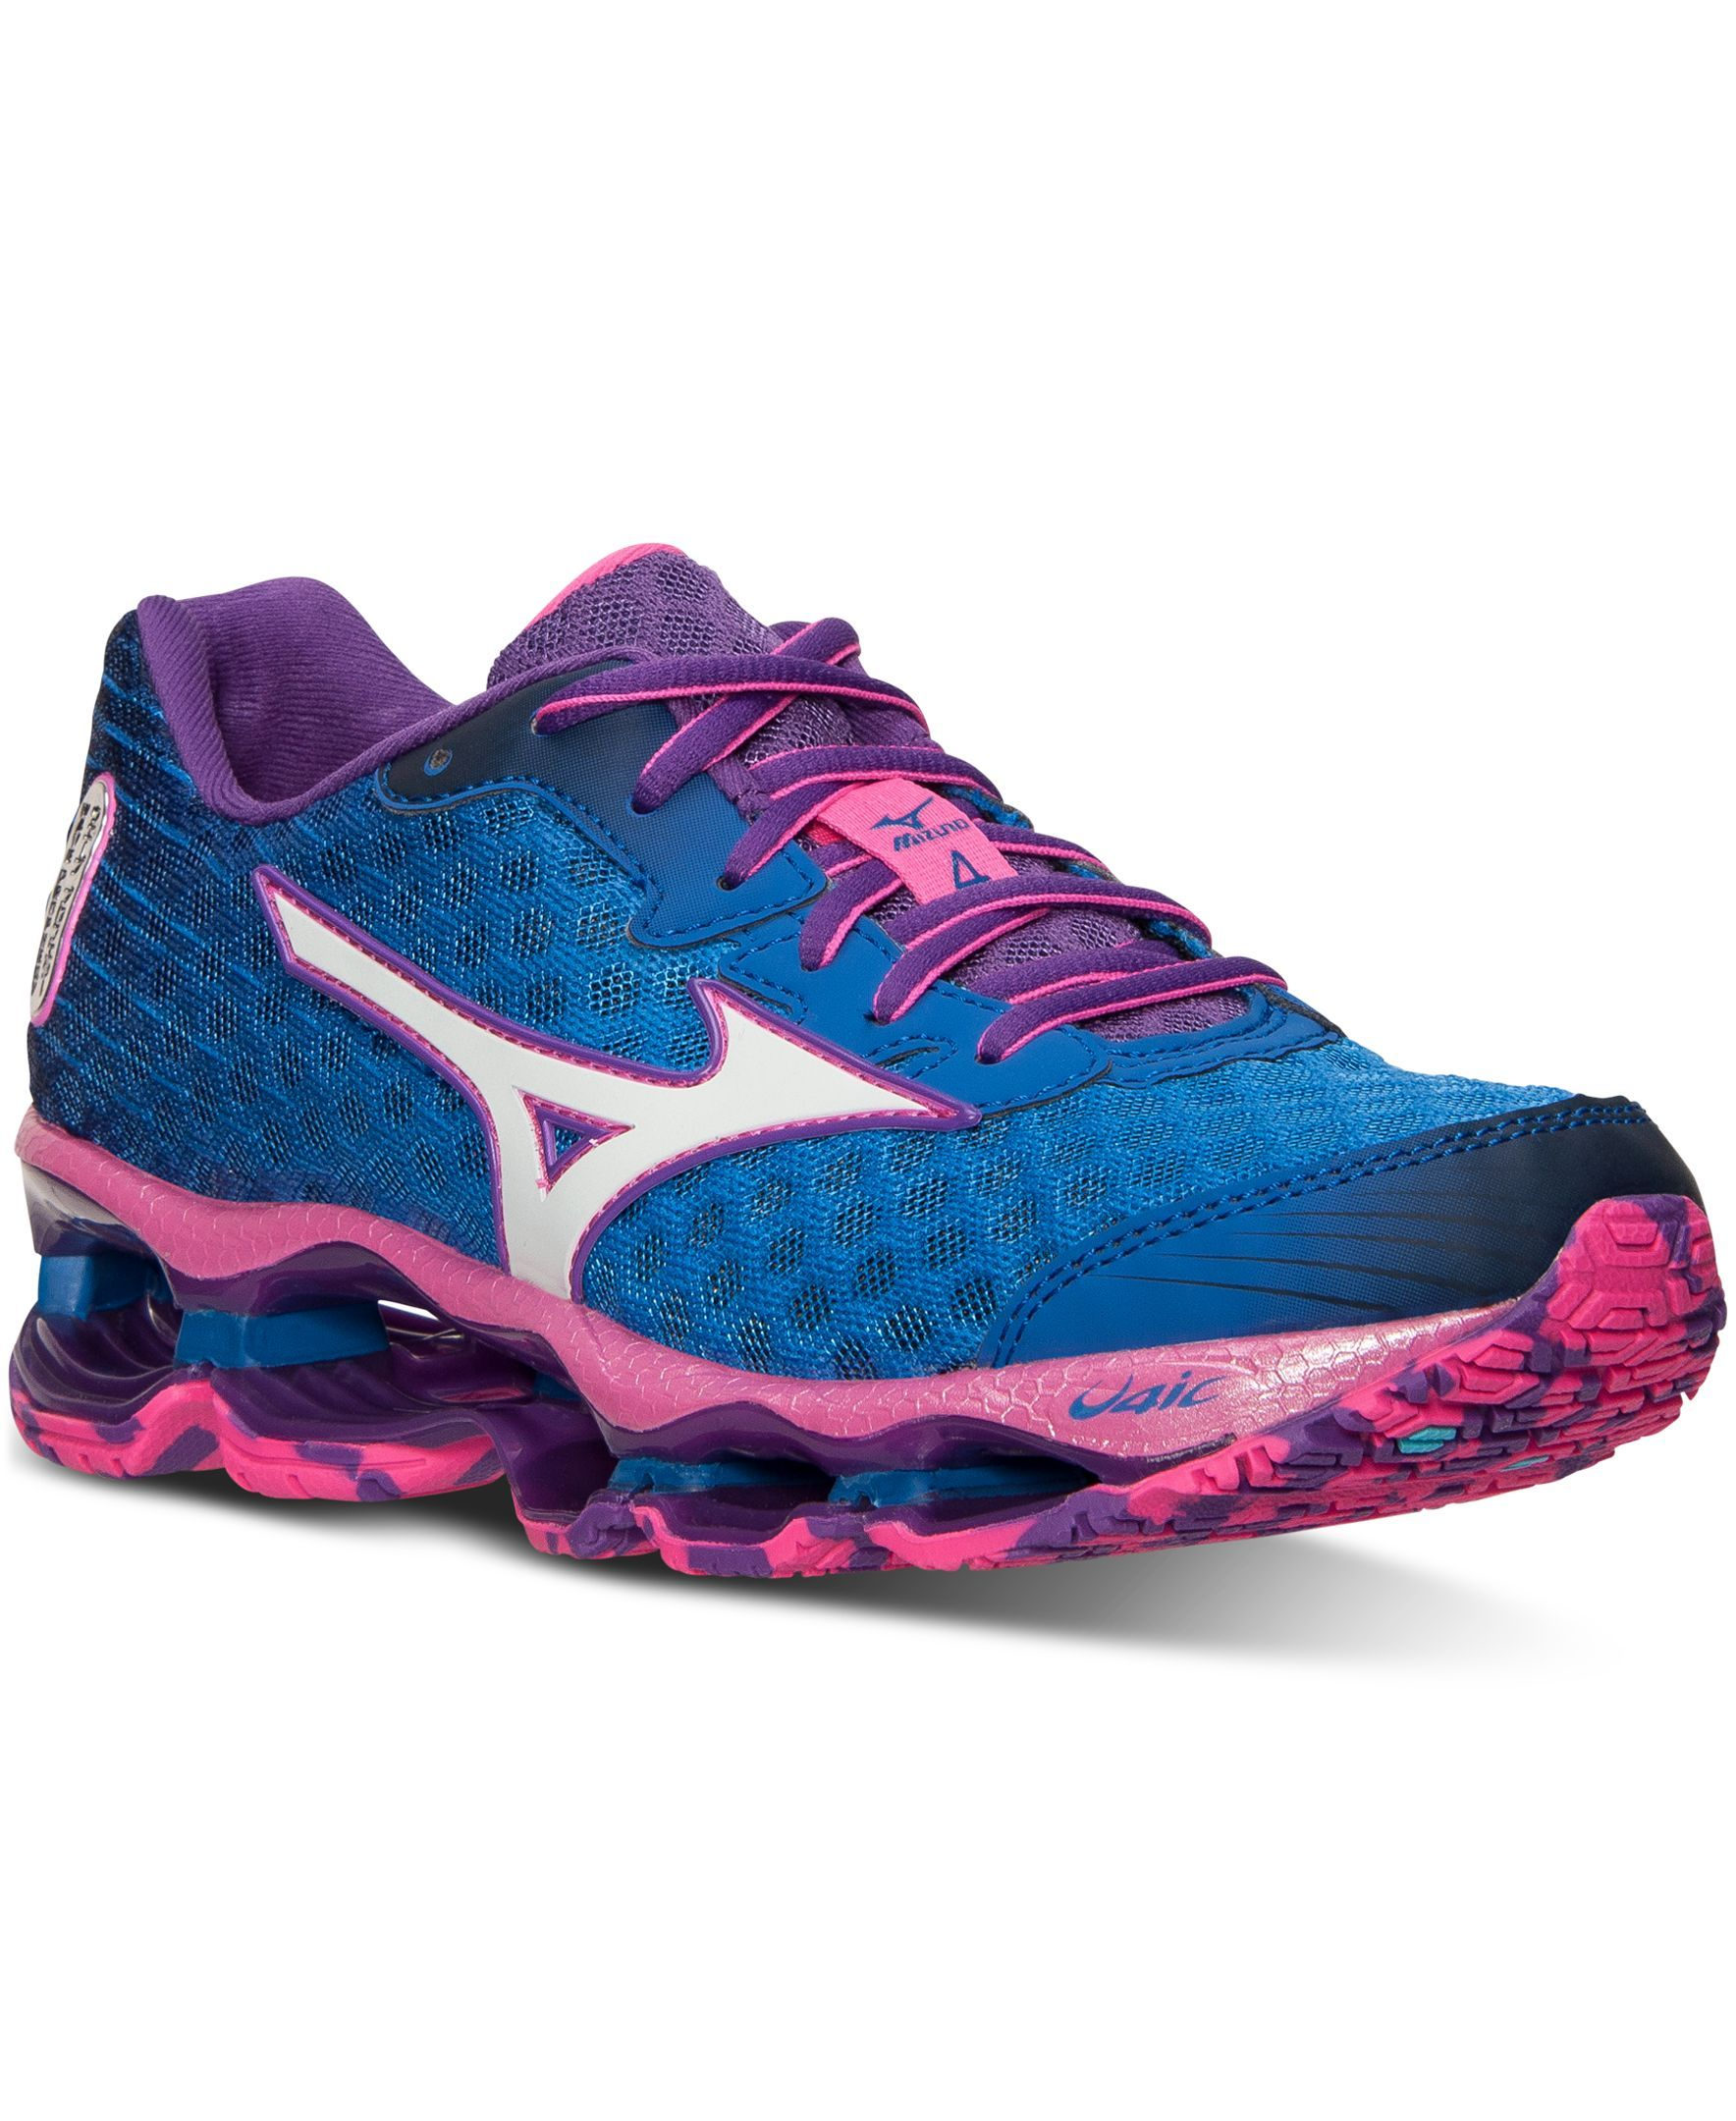 60b889126332 Mizuno Women's Wave Prophecy 4 Running Sneakers from Finish Line ...